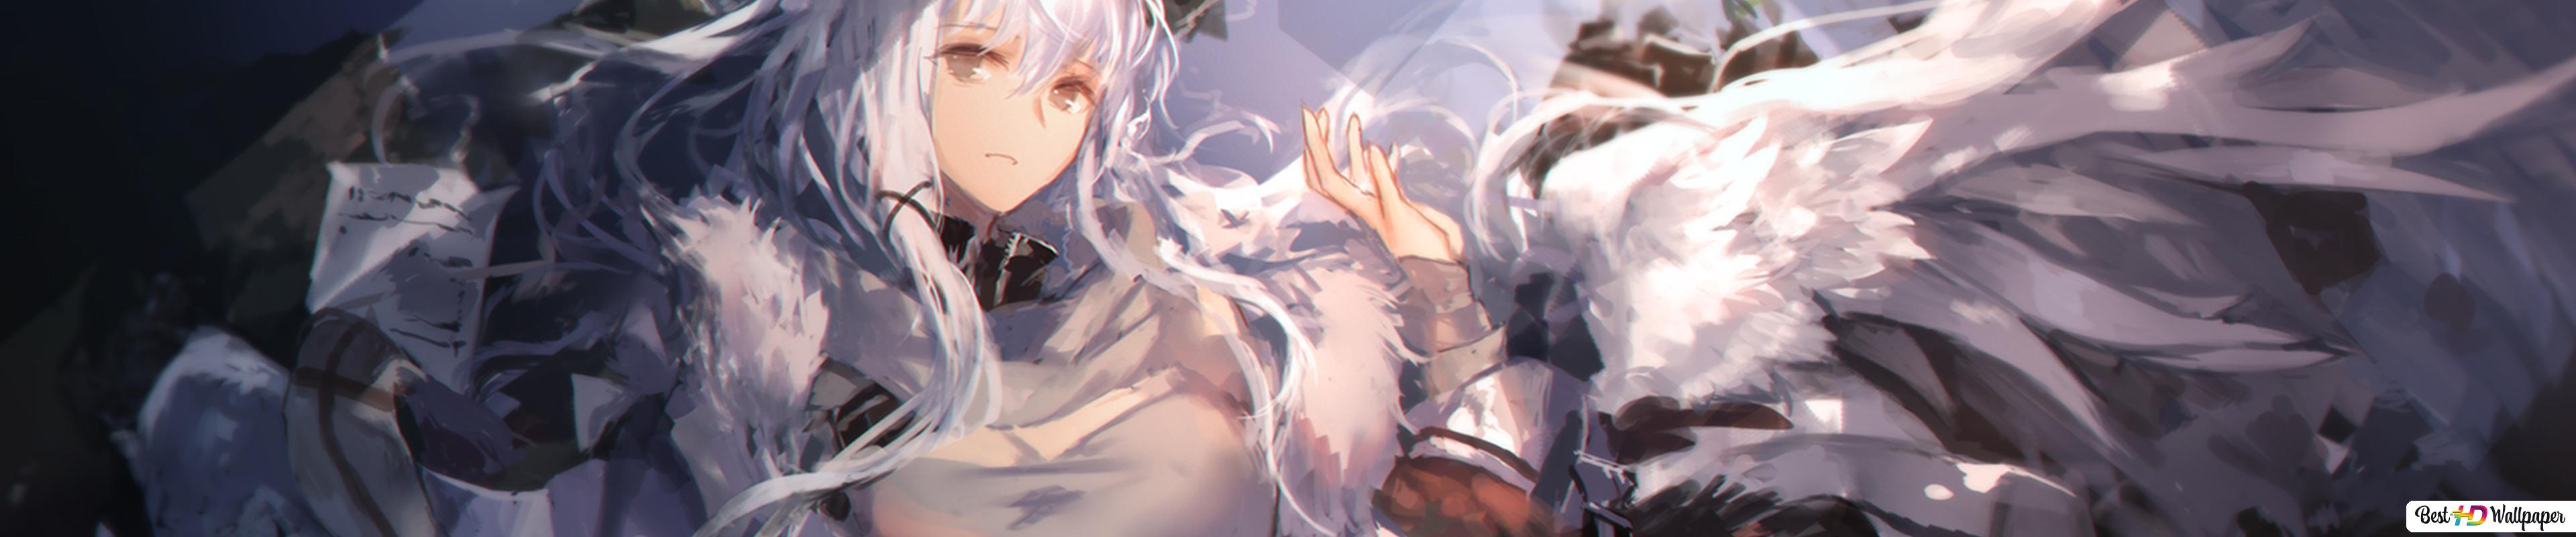 White Haired Anime Girl Hd Wallpaper Download